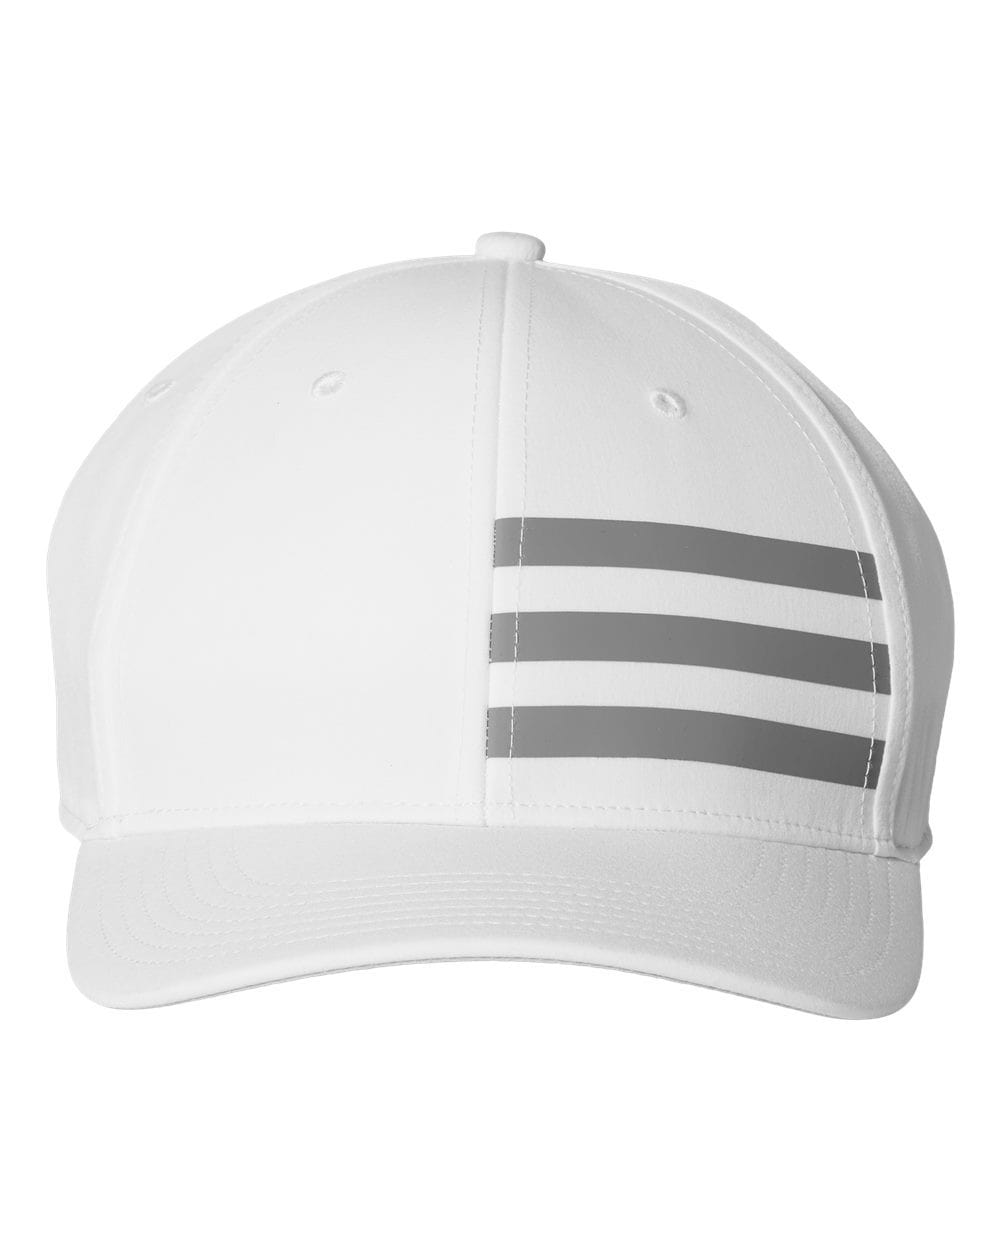 adidas Headwear One Size / White adidas - 3-Stripes Cap